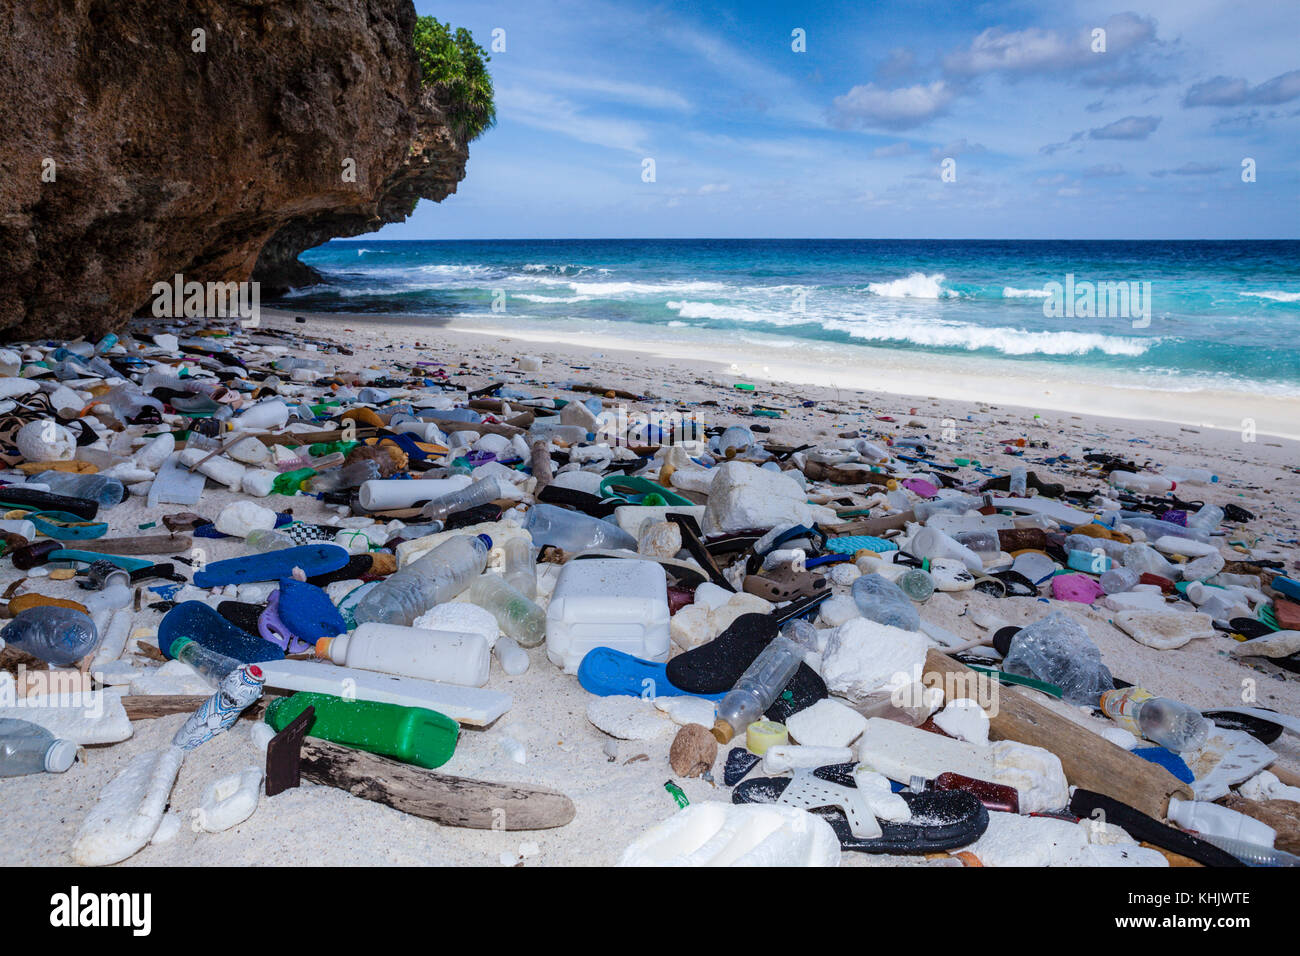 Christmas Island Australia.Plastic Waste Washed Up At Greta Beach Christmas Island